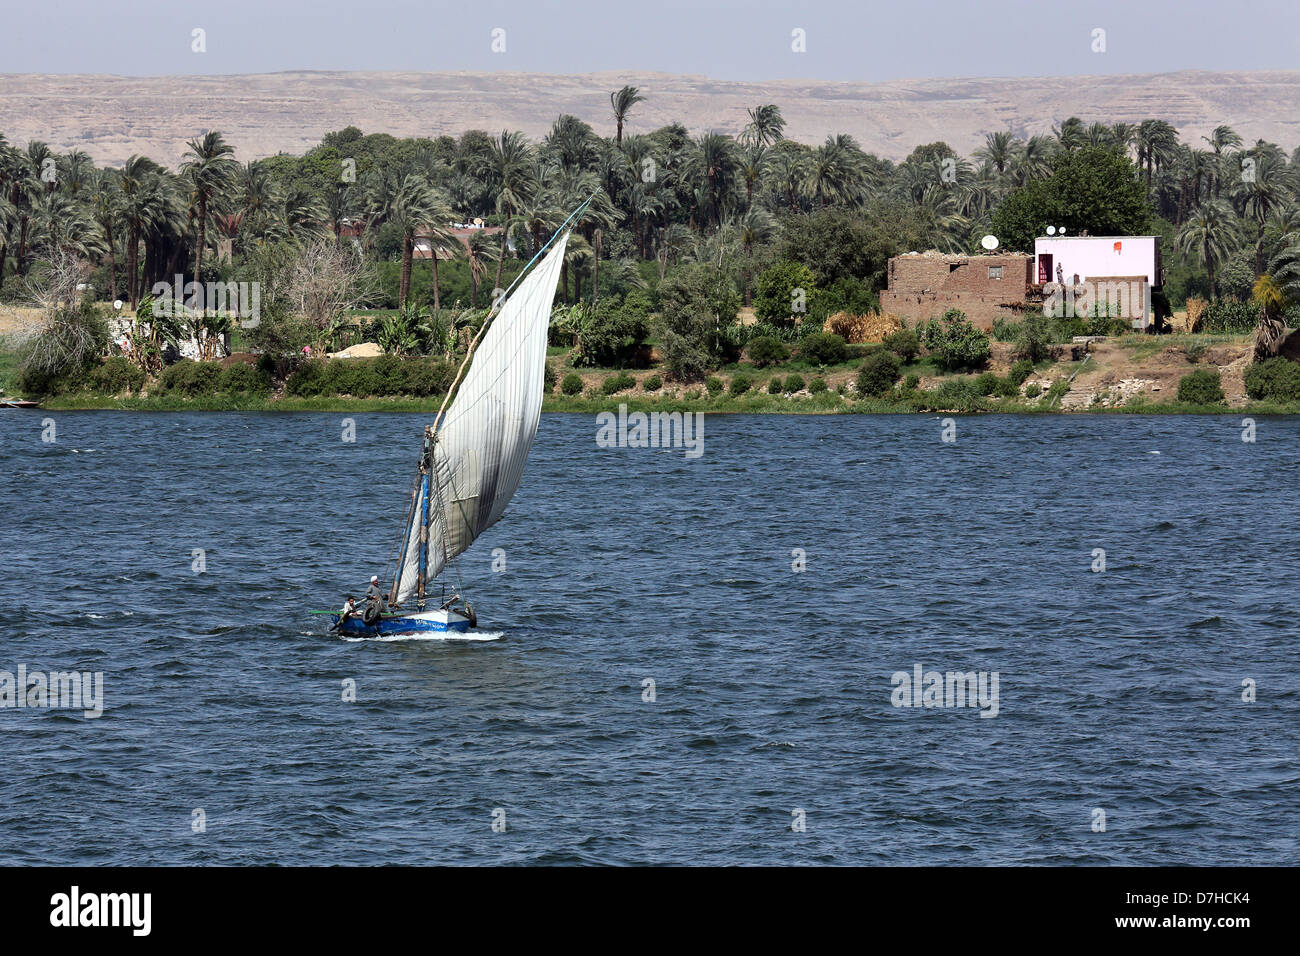 Felucca sailing boat on river Nile near Assiut, Upper Egypt - Stock Image